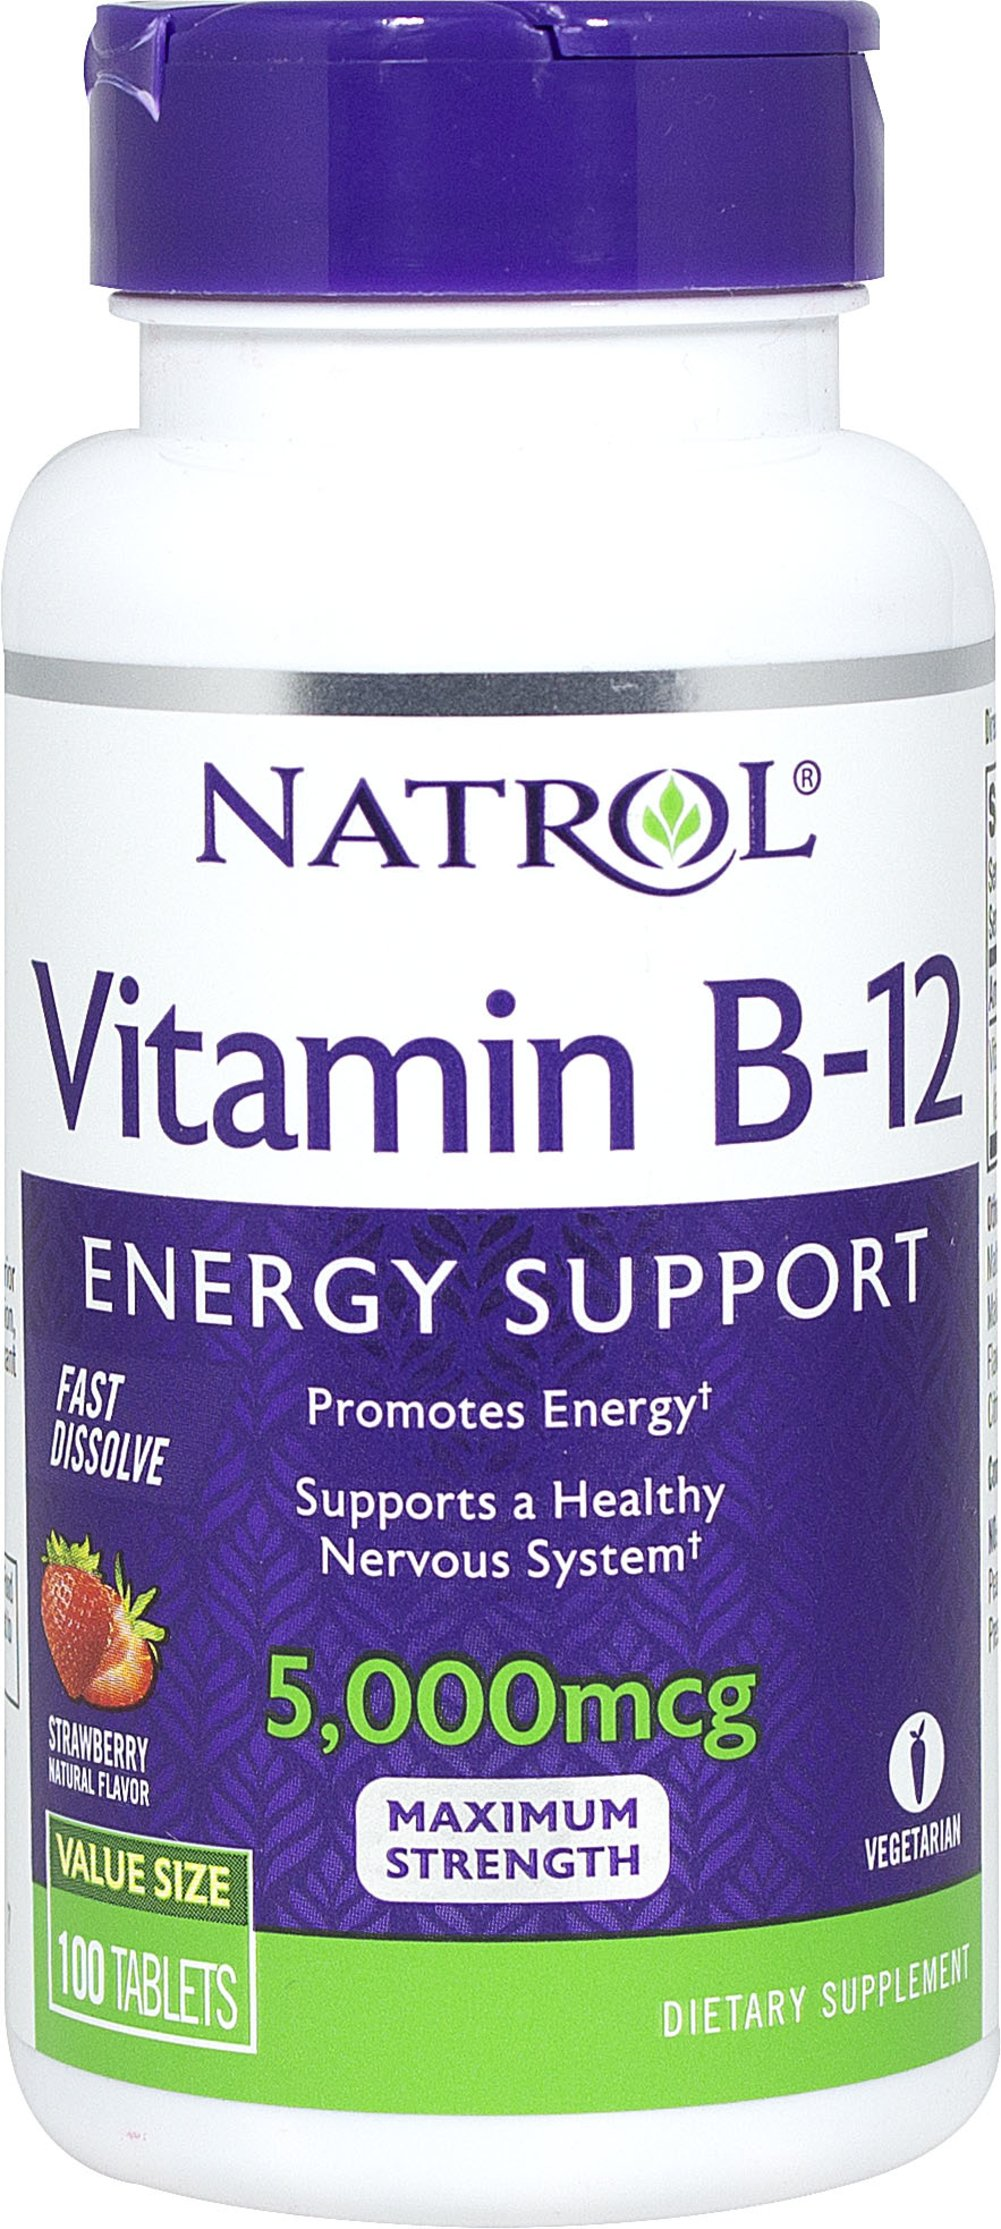 Vitamin B-12 5000 mcg Fast Dissolve <p><strong>From The Manufacturers Label:</strong></p><p><strong></strong></p><p>Natrol Vitamin B-12 Fast Dissolve delivers high potency energy support in a delicious, strawberry-flavored tablet.  This fast-dissolve formula delivers unique, rapid dissolve technology that helps promote fast absorption.</p><p>Manufactured by Natrol</p><p></p> 100 Tablets 5000 mcg $8.99